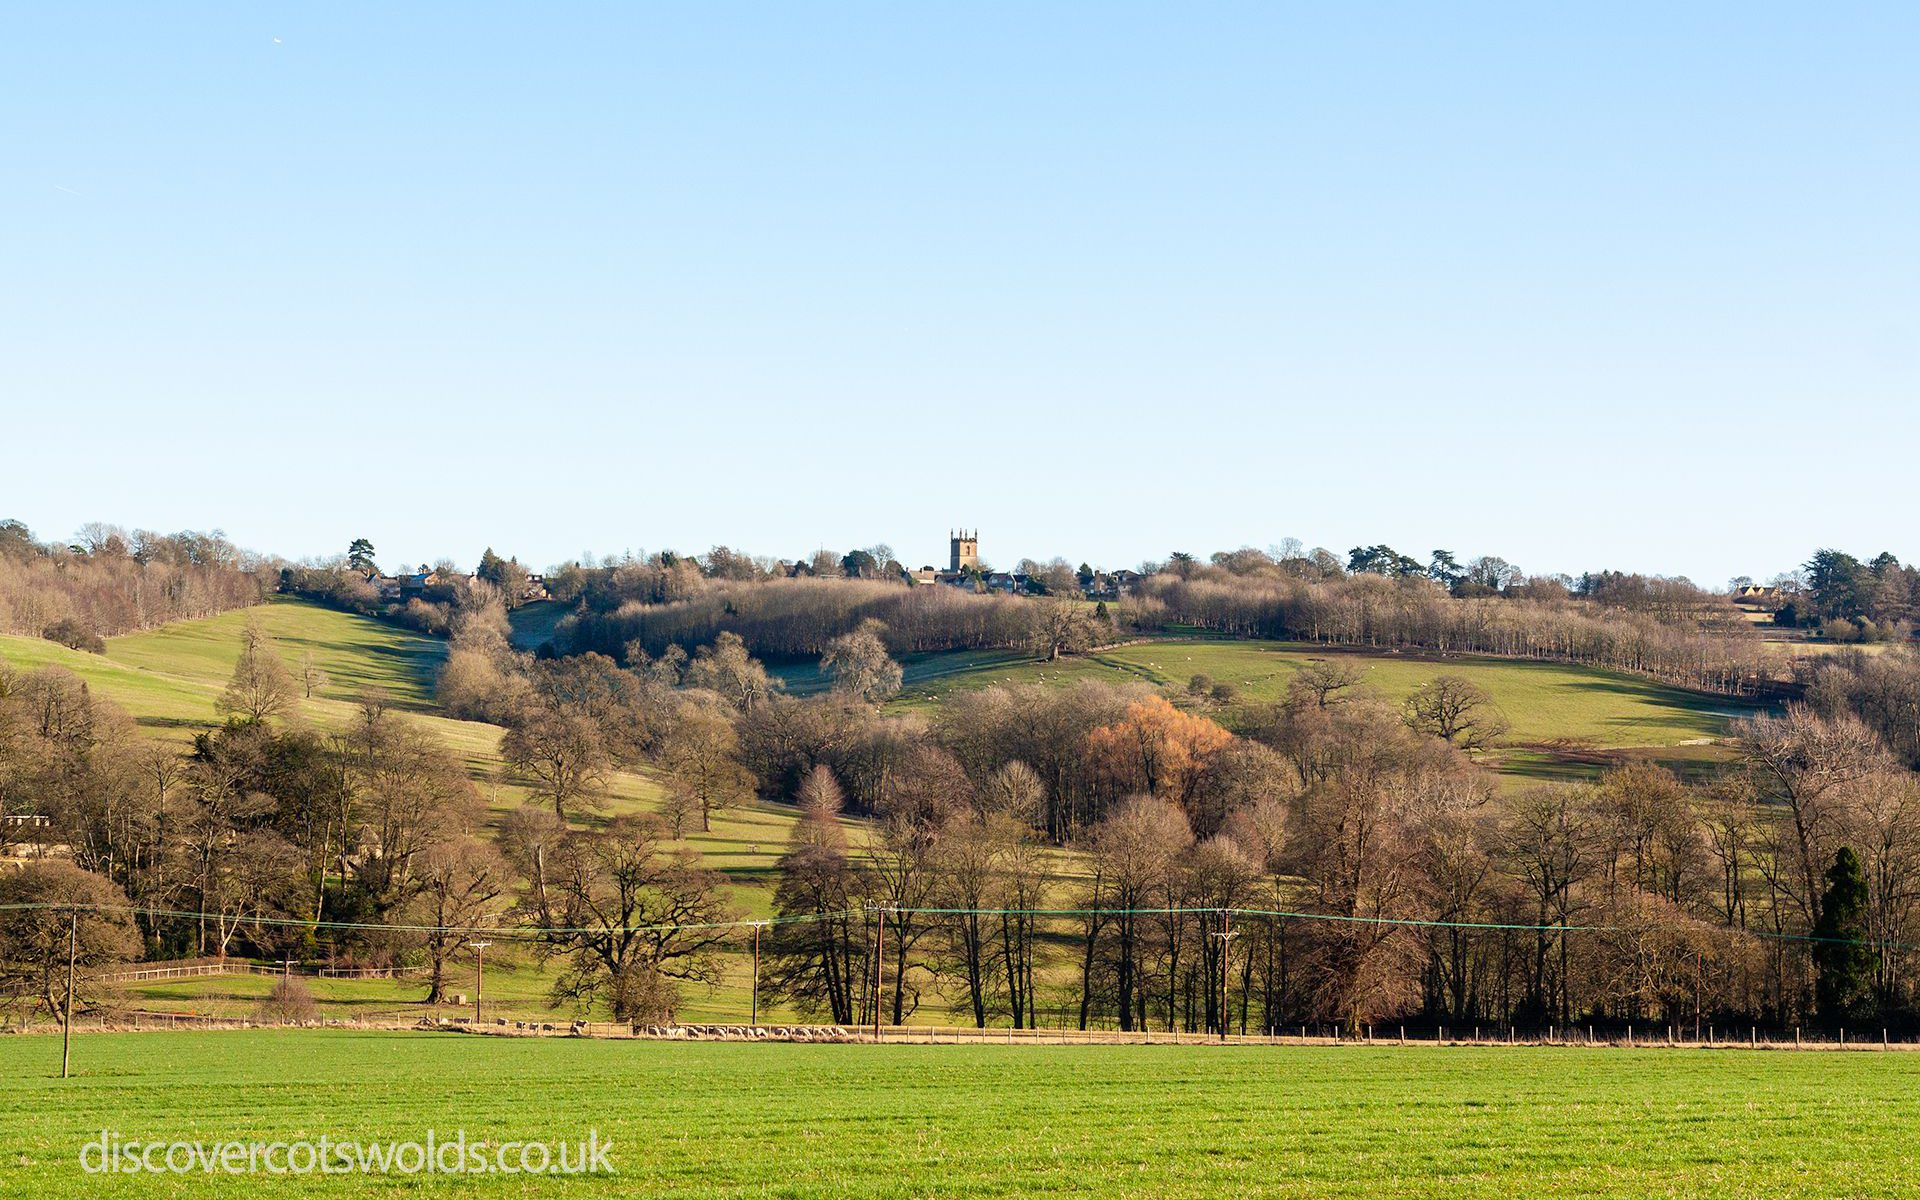 Landscape looking towards Stow on the Wold